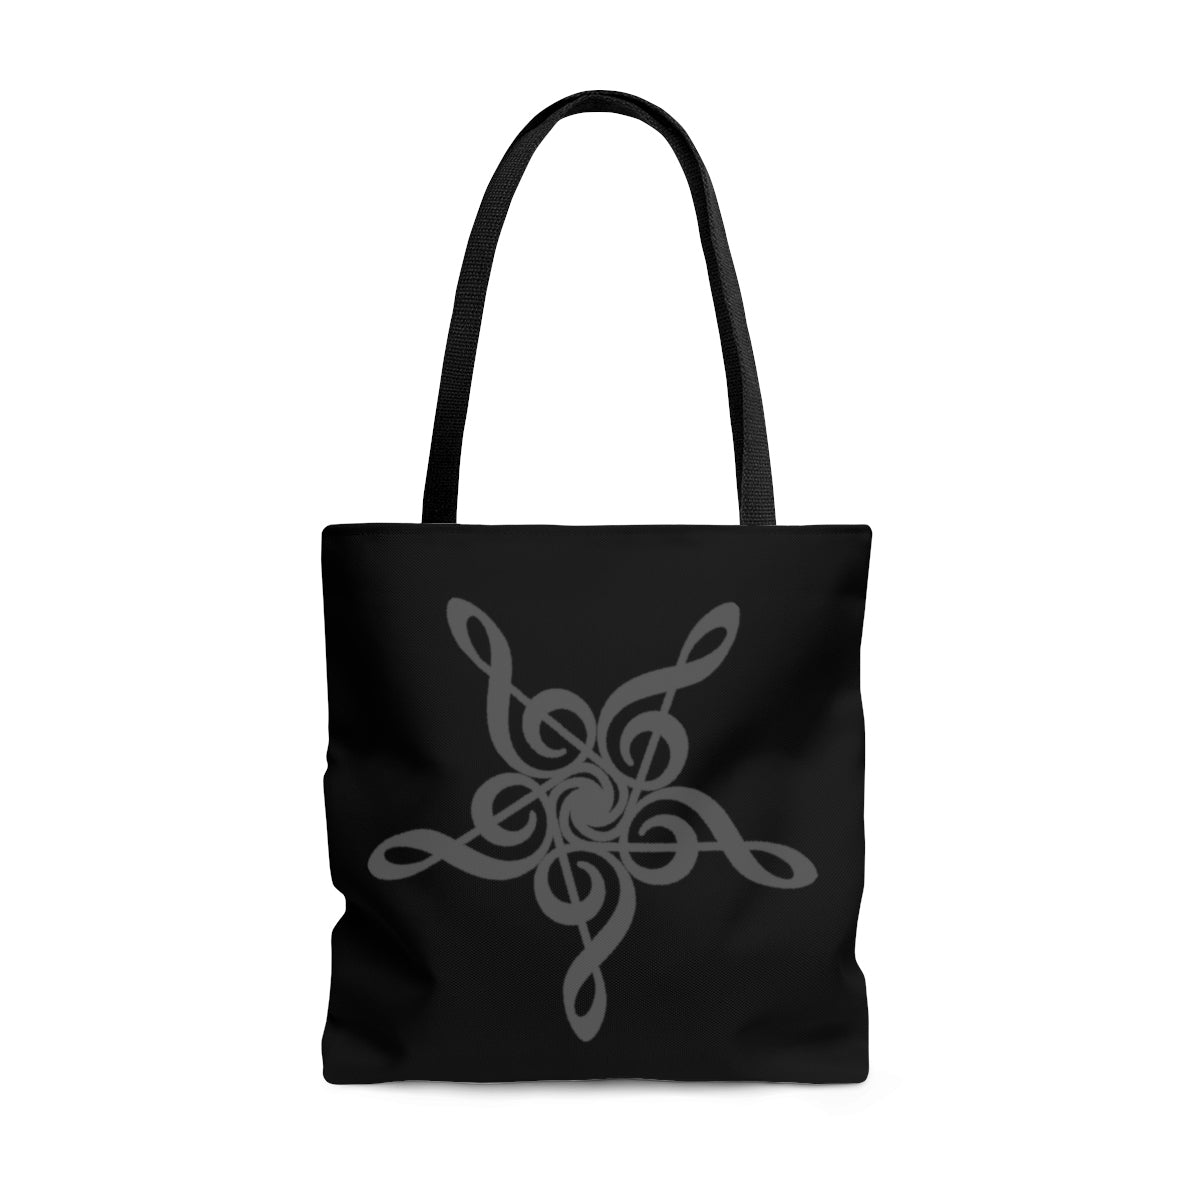 Tote Bag Filthy Treble Clef Star